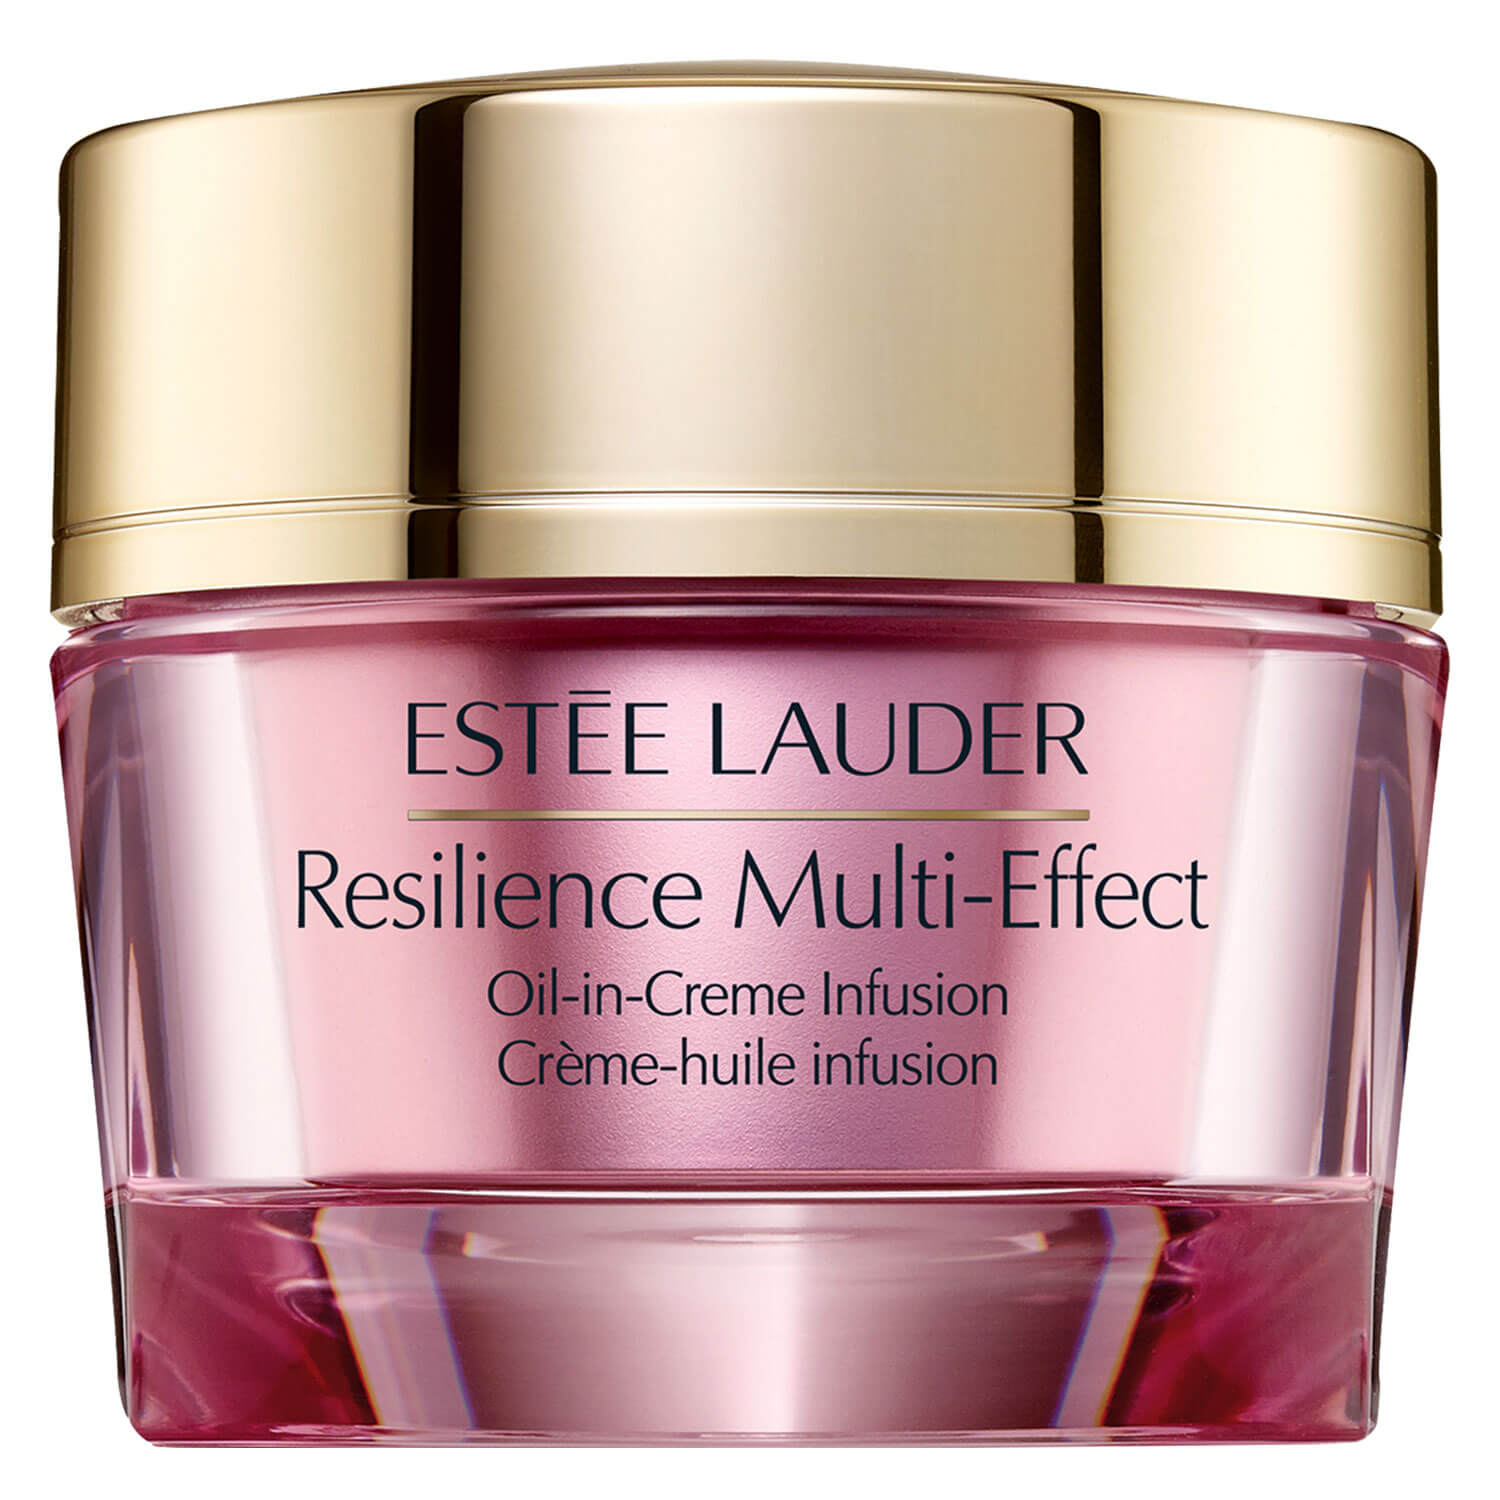 Resilience Multi-Effect - Oil-in-Creme Infusion